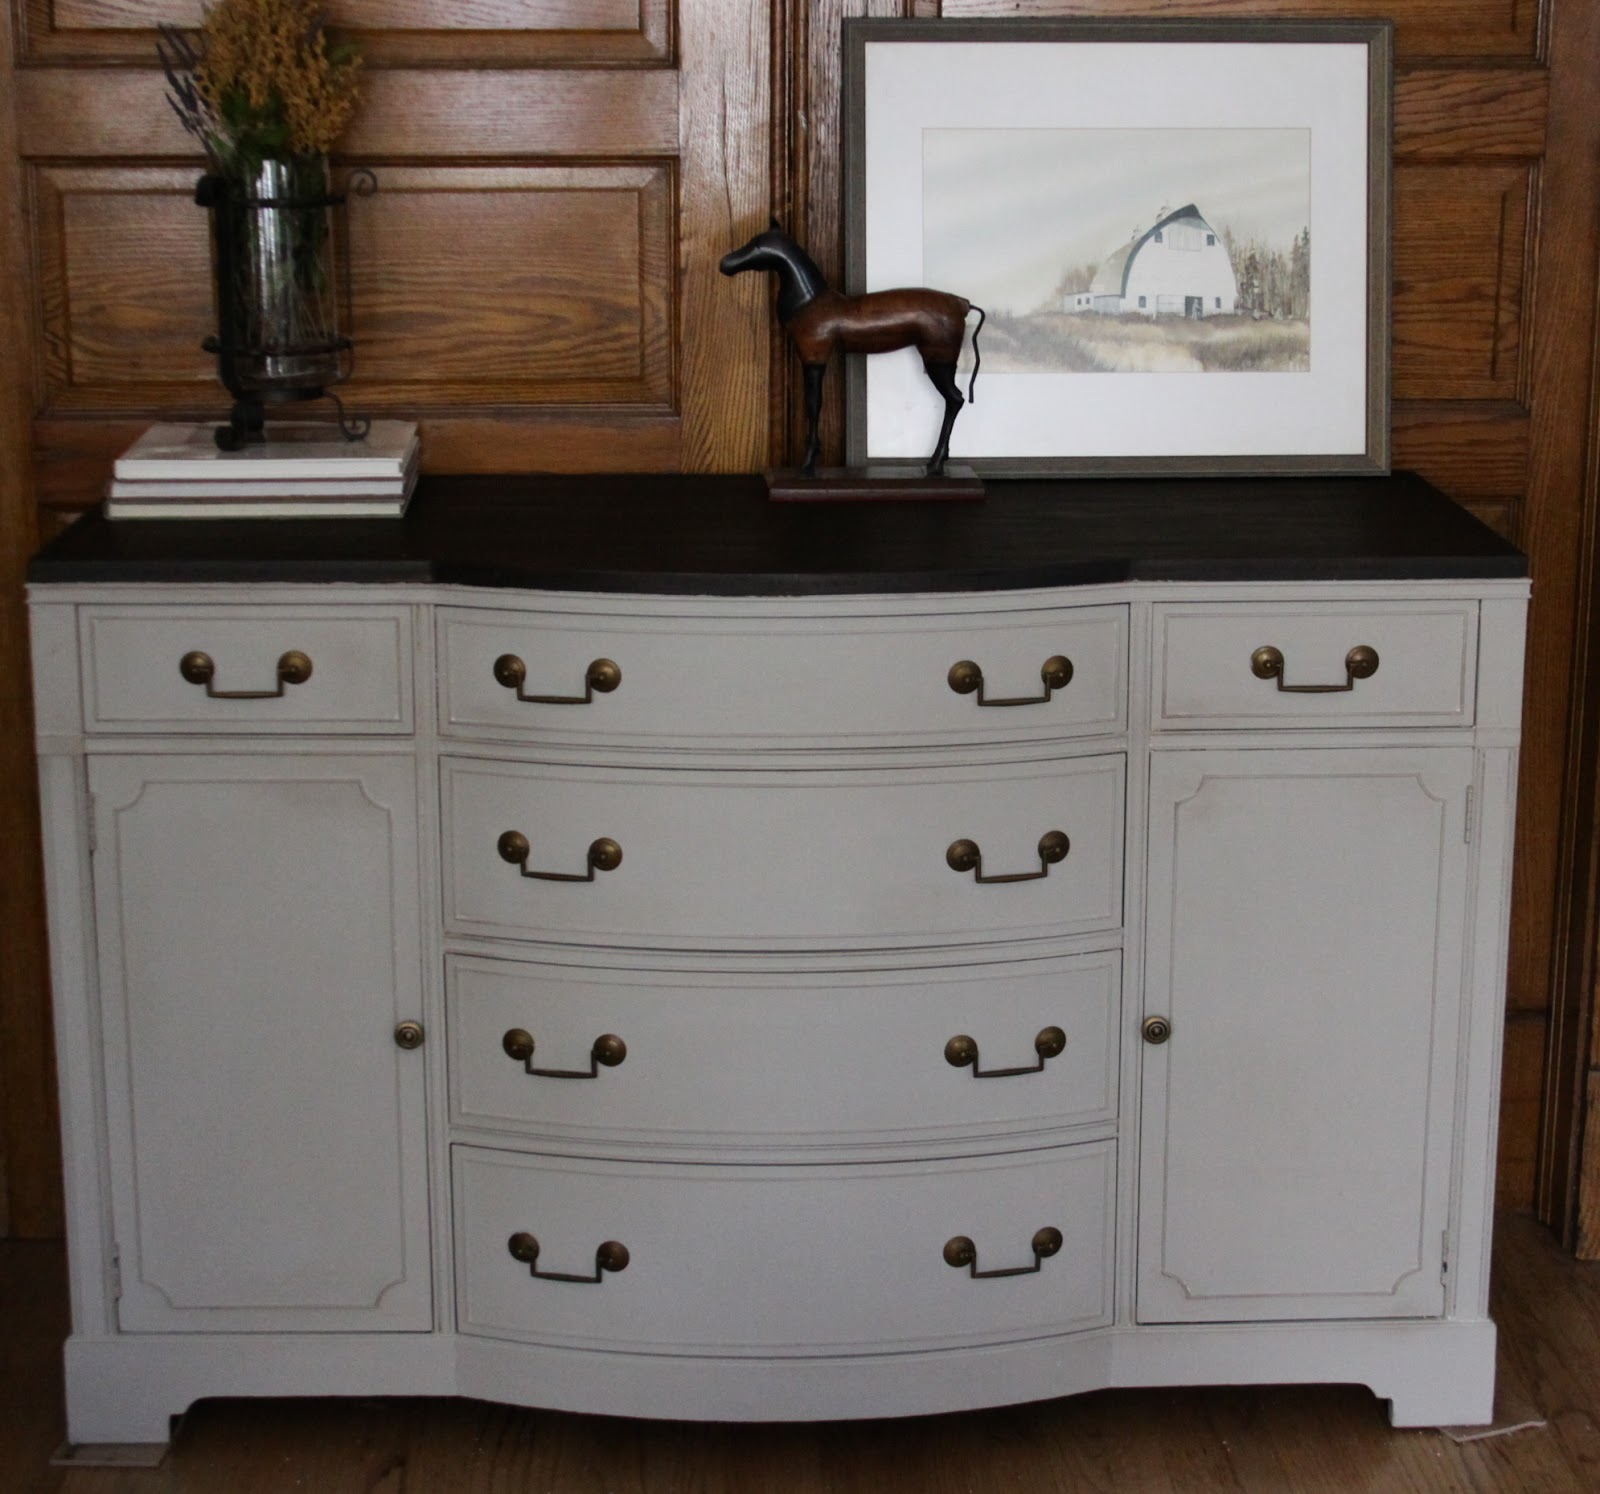 dresser colebrook product overstock goods garden ameriwood home shipping today drawer free dressers